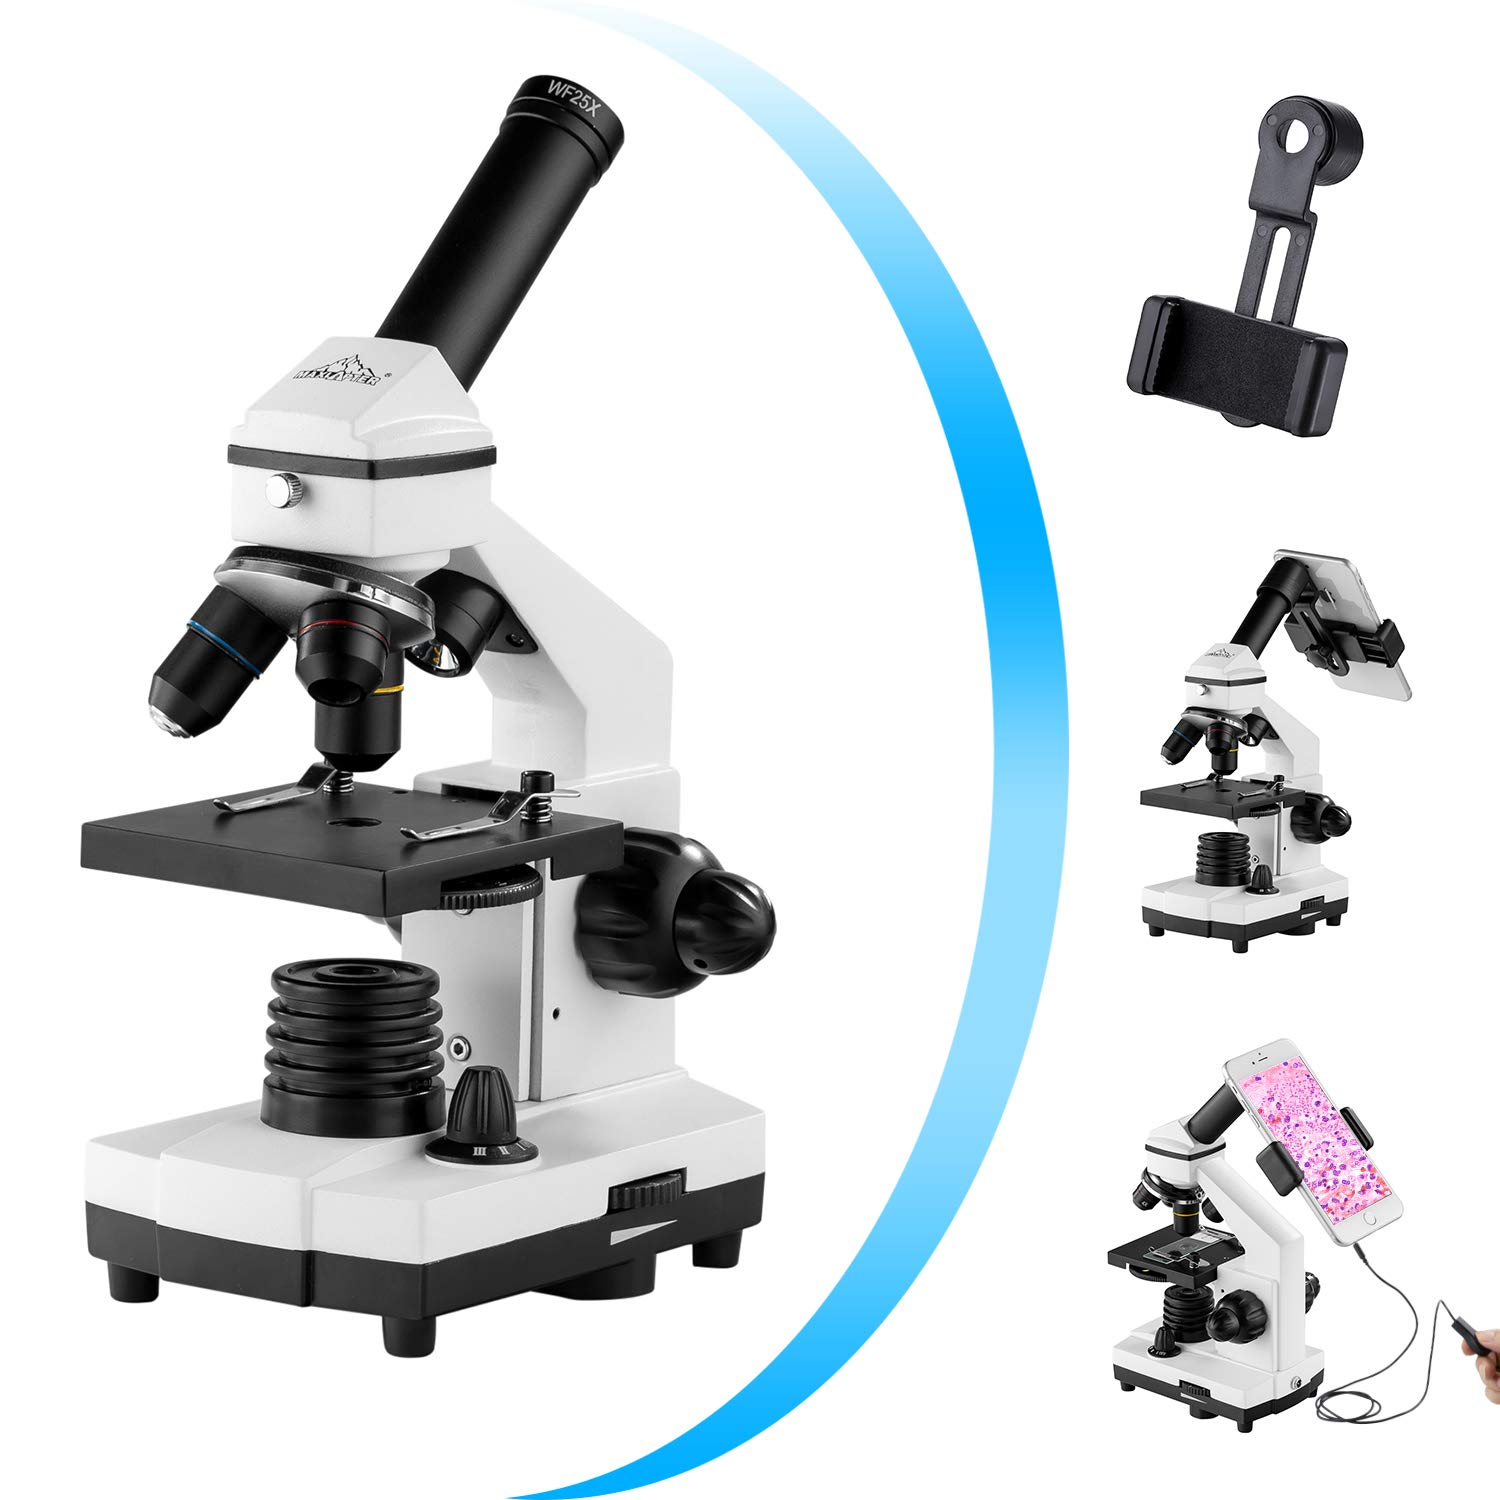 Monocular Microscope for Kids, 200x-2000x Magnification Biological School Students Microscope with Slides Set,Phone Adapter,Wire Shutter, Carrying Bag MAXLAPTER